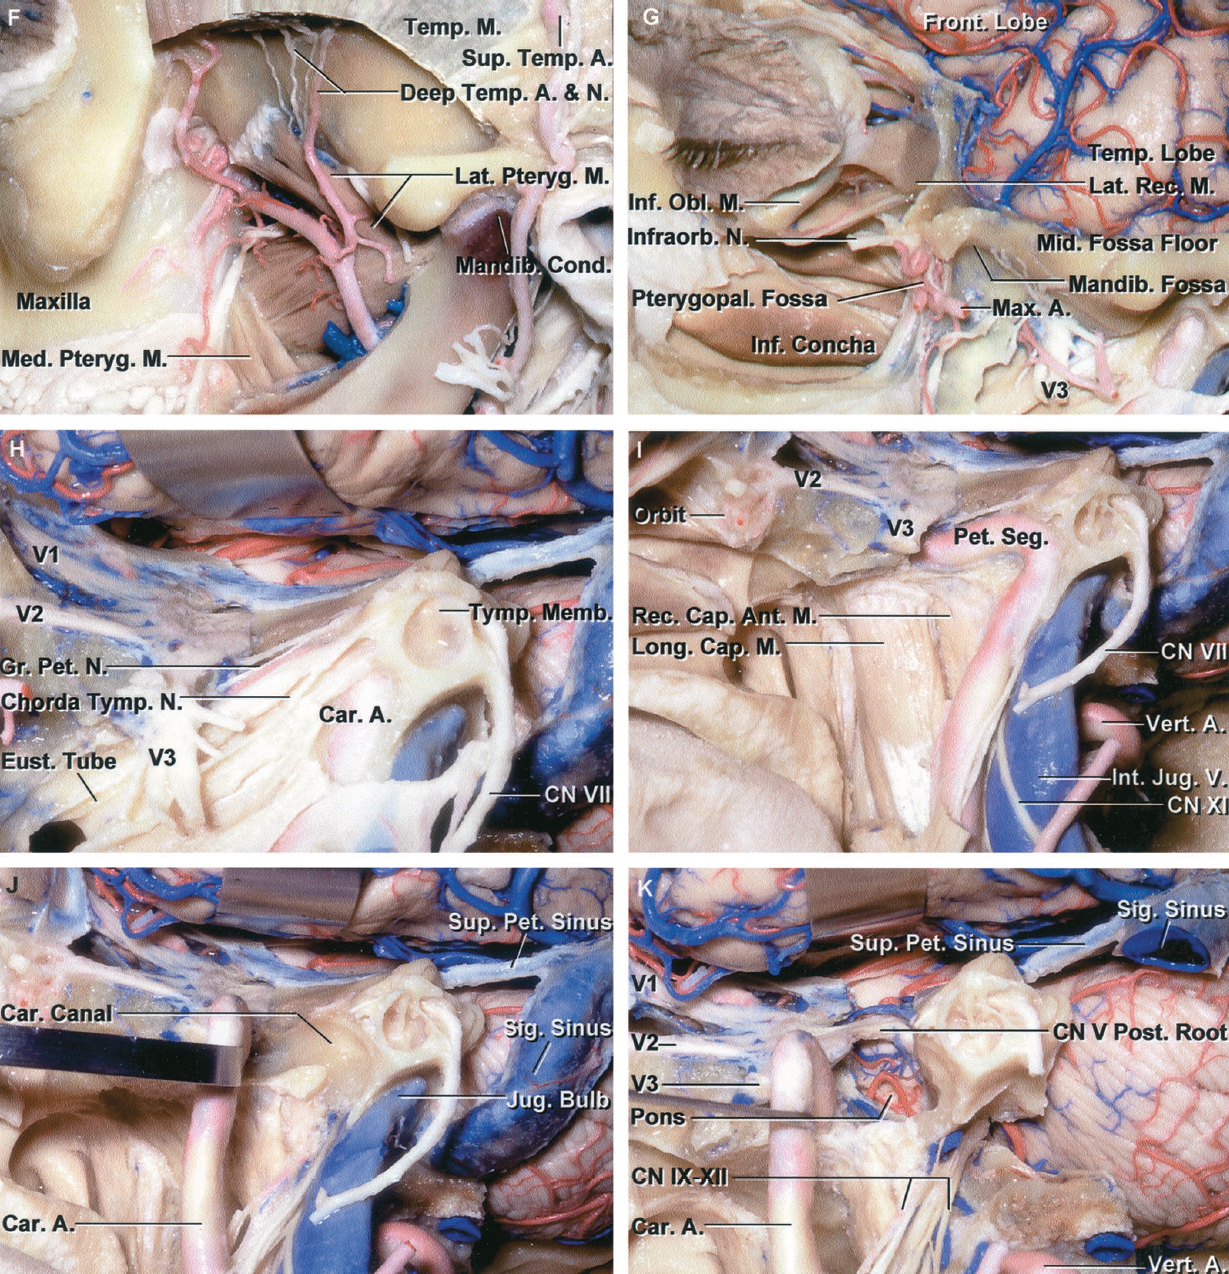 FIGURE 6.9. F-K. F, the coronoid process and lower part of the temporalis muscle have been removed to expose the deep temporal branches of both the maxillary artery and mandibular nerve passing upward along the greater sphenoid wing and temporal squama to enter the deep side of the temporalis muscle. The lateral pterygoid muscles extend backward from the pterygoid process and greater wing of the sphenoid to insert along the mandibular condyle and temporomandibular joint. G, a craniotomy has been performed to expose the floor of the middle fossa, and the lateral wall of the orbital has been removed to expose the extraocular muscles. The mandibular condyle has been removed and the pterygoid muscles reflected to expose the mandibular nerve at the foramen ovale. The pterygopalatine fossa is located behind the maxilla. The floor of the orbit and the upper part of the maxilla have been removed to expose the nasal cavity. H, enlarged view after resection of the floor of the middle fossa and the external auditory canal to expose the tympanic membrane and the mandibular nerve below the foramen ovale. The mastoid segment of the facial nerve has been preserved. The greater petrosal nerve crosses above the petrous carotid. The tensor tympani muscle and eustachian tube are layered along the anterior margin of the petrous carotid. I, the eustachian tube and tensor tympani have been resected to expose the upper cervical and petrous carotid. The nasopharyngeal mucosa has been opened to expose the longus capitis and rectus capitis anterior muscles. J, the carotid artery has been reflected forward out of the carotid canal. This exposes the petrous apex in front of the jugular foramen on the medial side of the internal carotid artery. K, the petrous apex has been drilled and the dura opened below the trigeminal nerve to expose the upper anterior part of the posterior cranial fossa. A segment of the internal jugular vein and jugular bulb have been resected to expose the IXth through XI